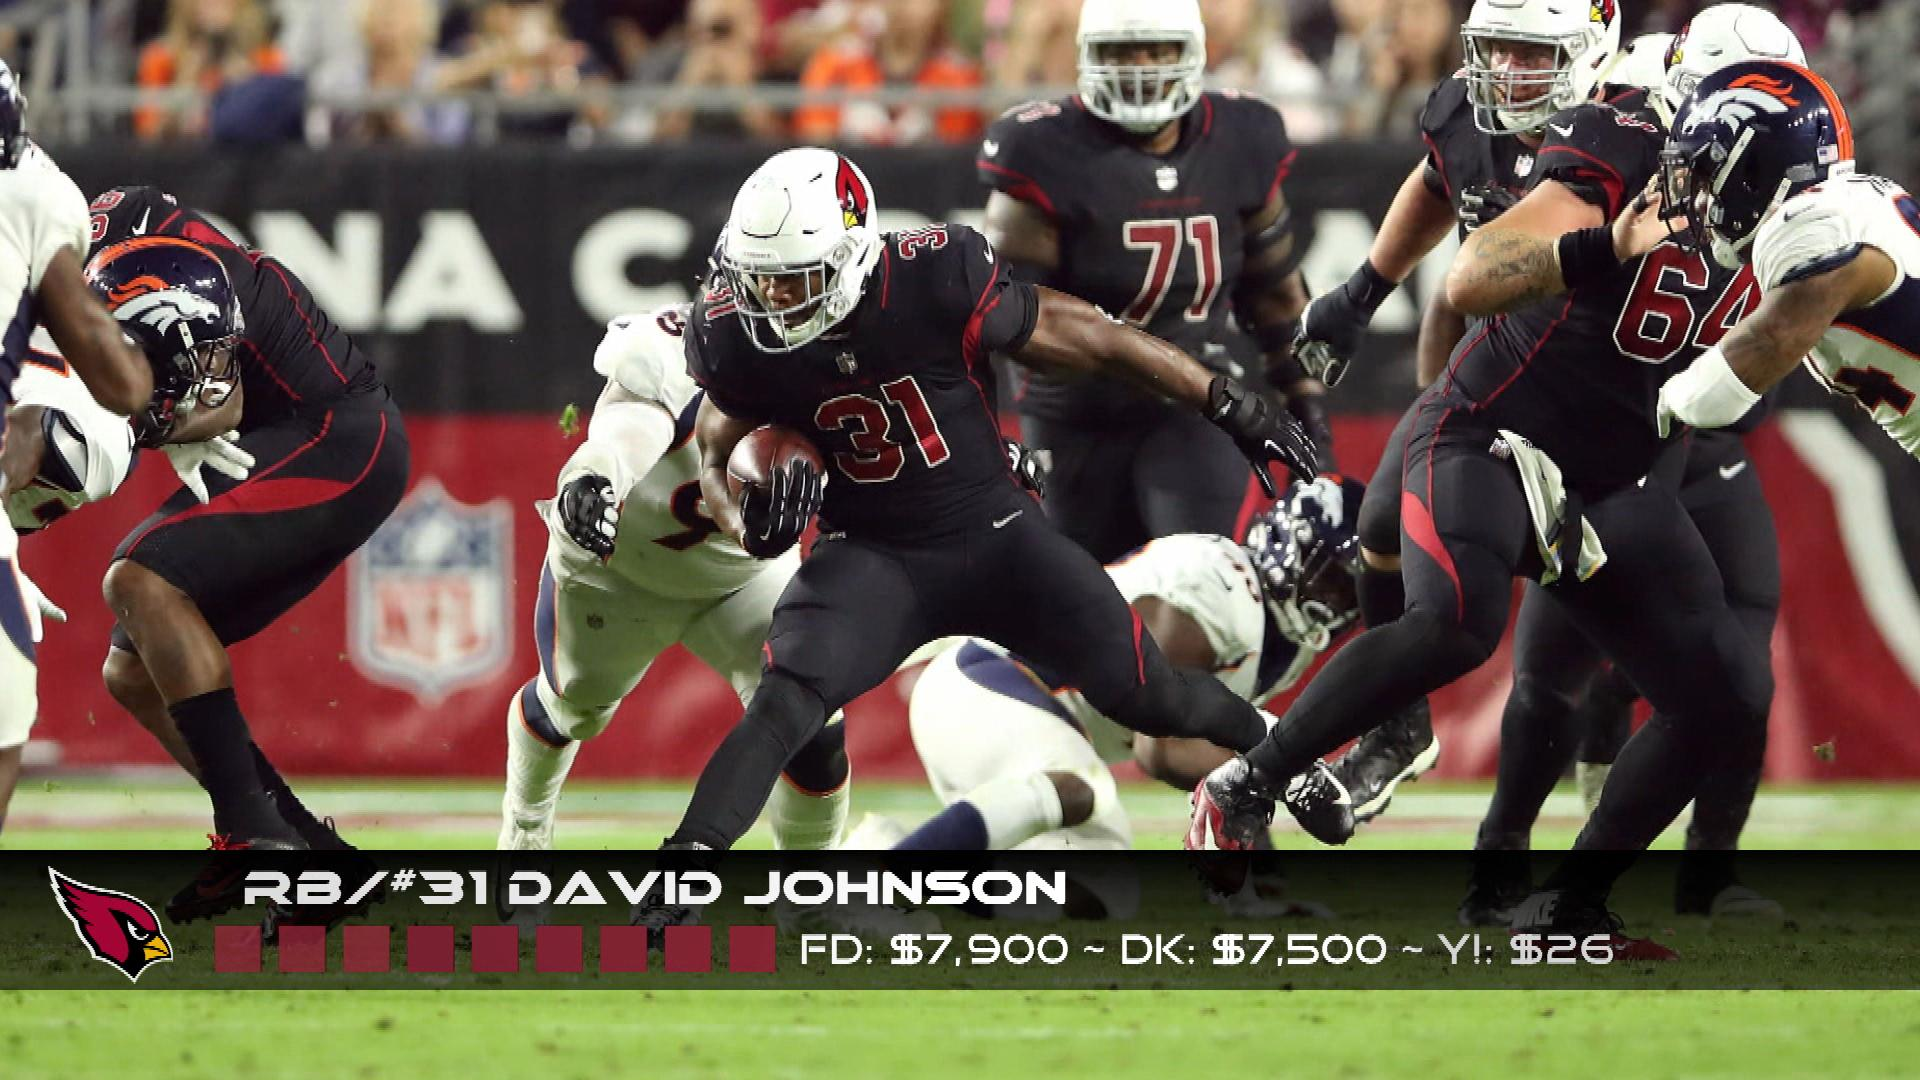 Cardinals' David Johnson, Titans' Dion Lewis are ideal DFS Week 11 plays